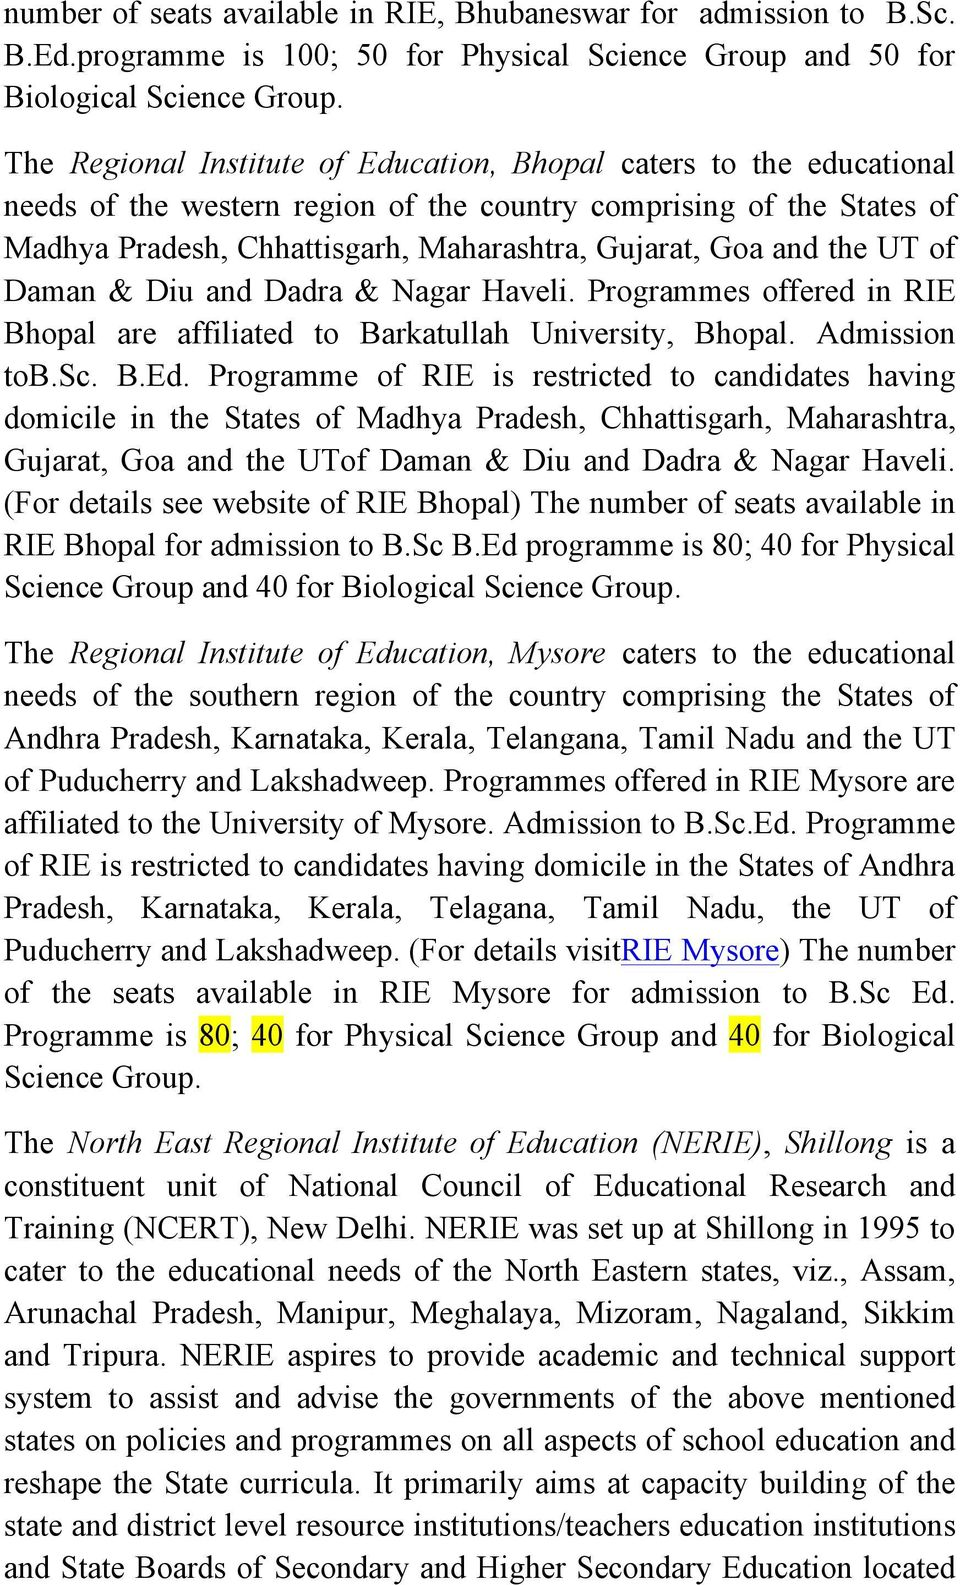 and the UT of Daman & Diu and Dadra & Nagar Haveli. Programmes offered in RIE Bhopal are affiliated to Barkatullah University, Bhopal. Admission tob.sc. B.Ed.